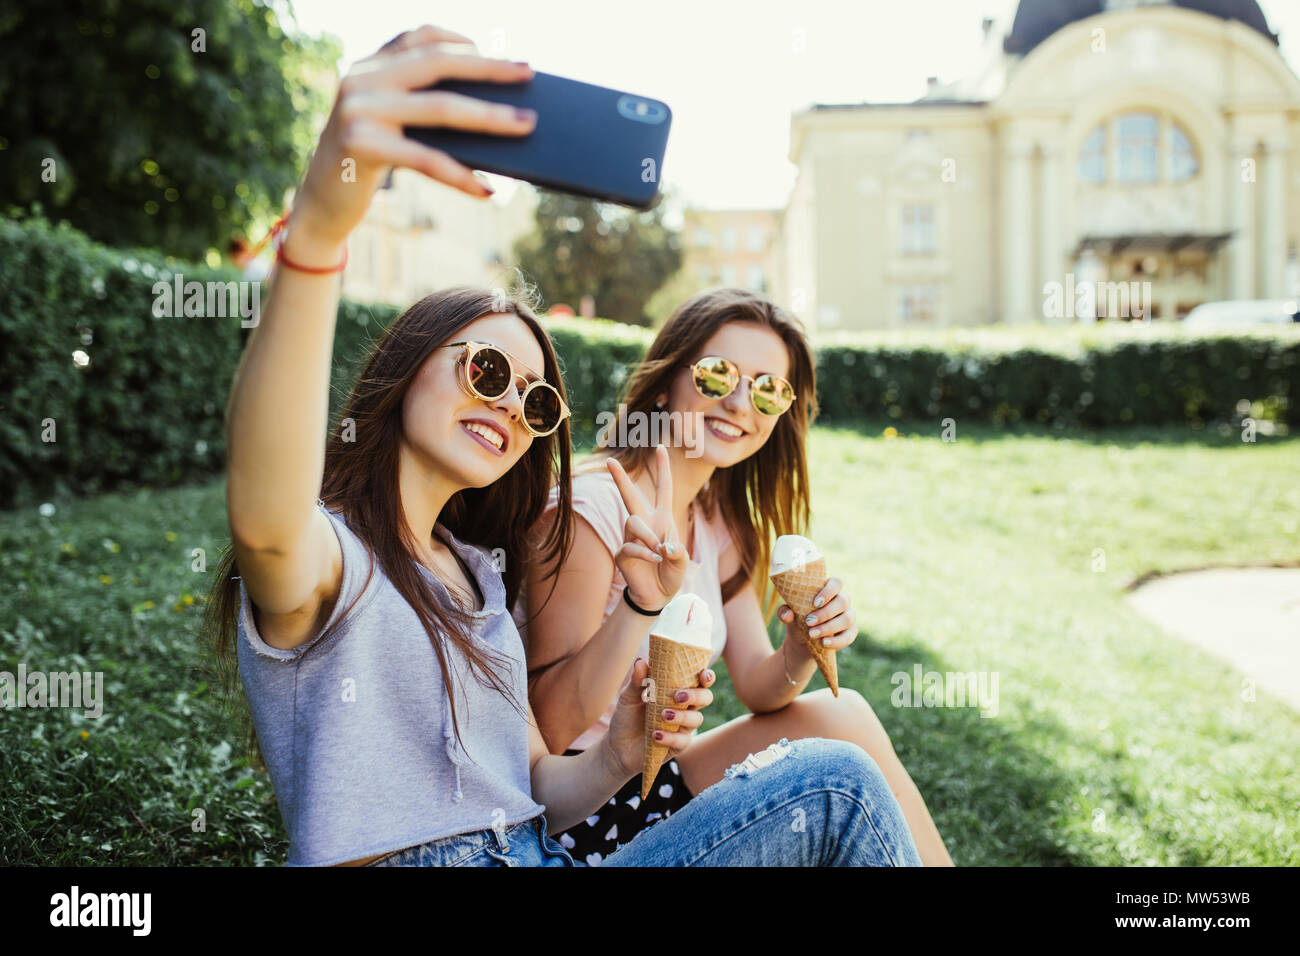 Two women friends take selfie while eating ice cream near river at sunset in summer - Stock Image